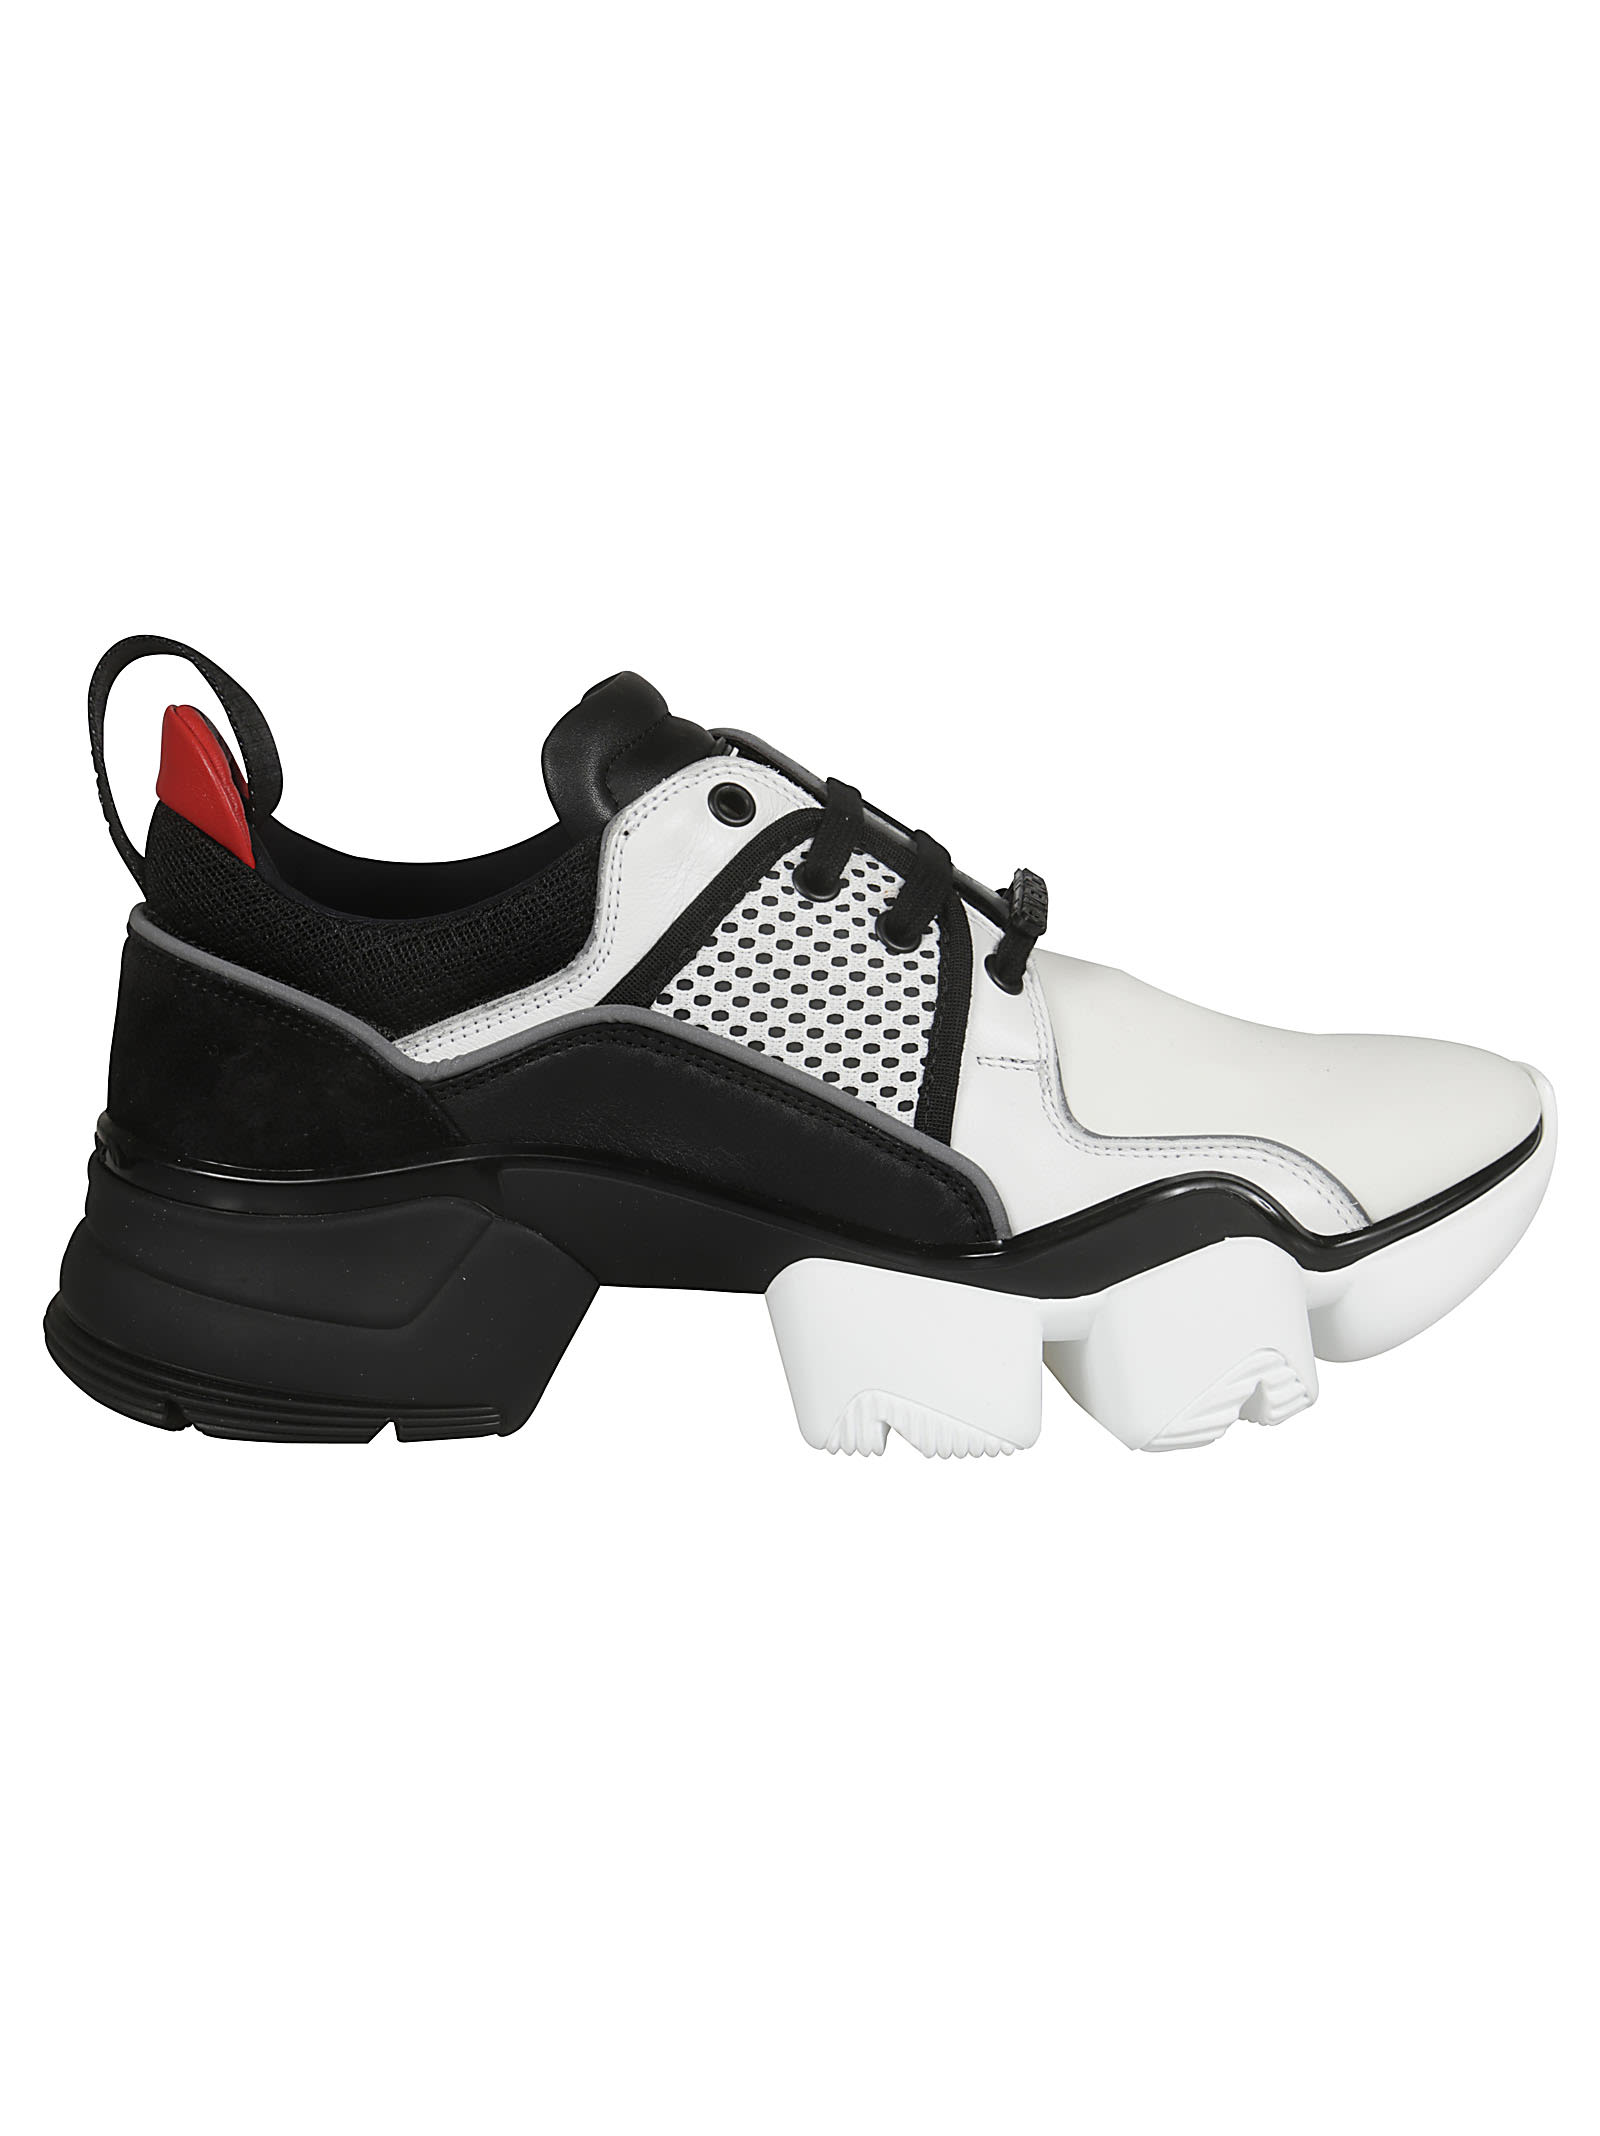 Givenchy Givenchy Sneakers - Black